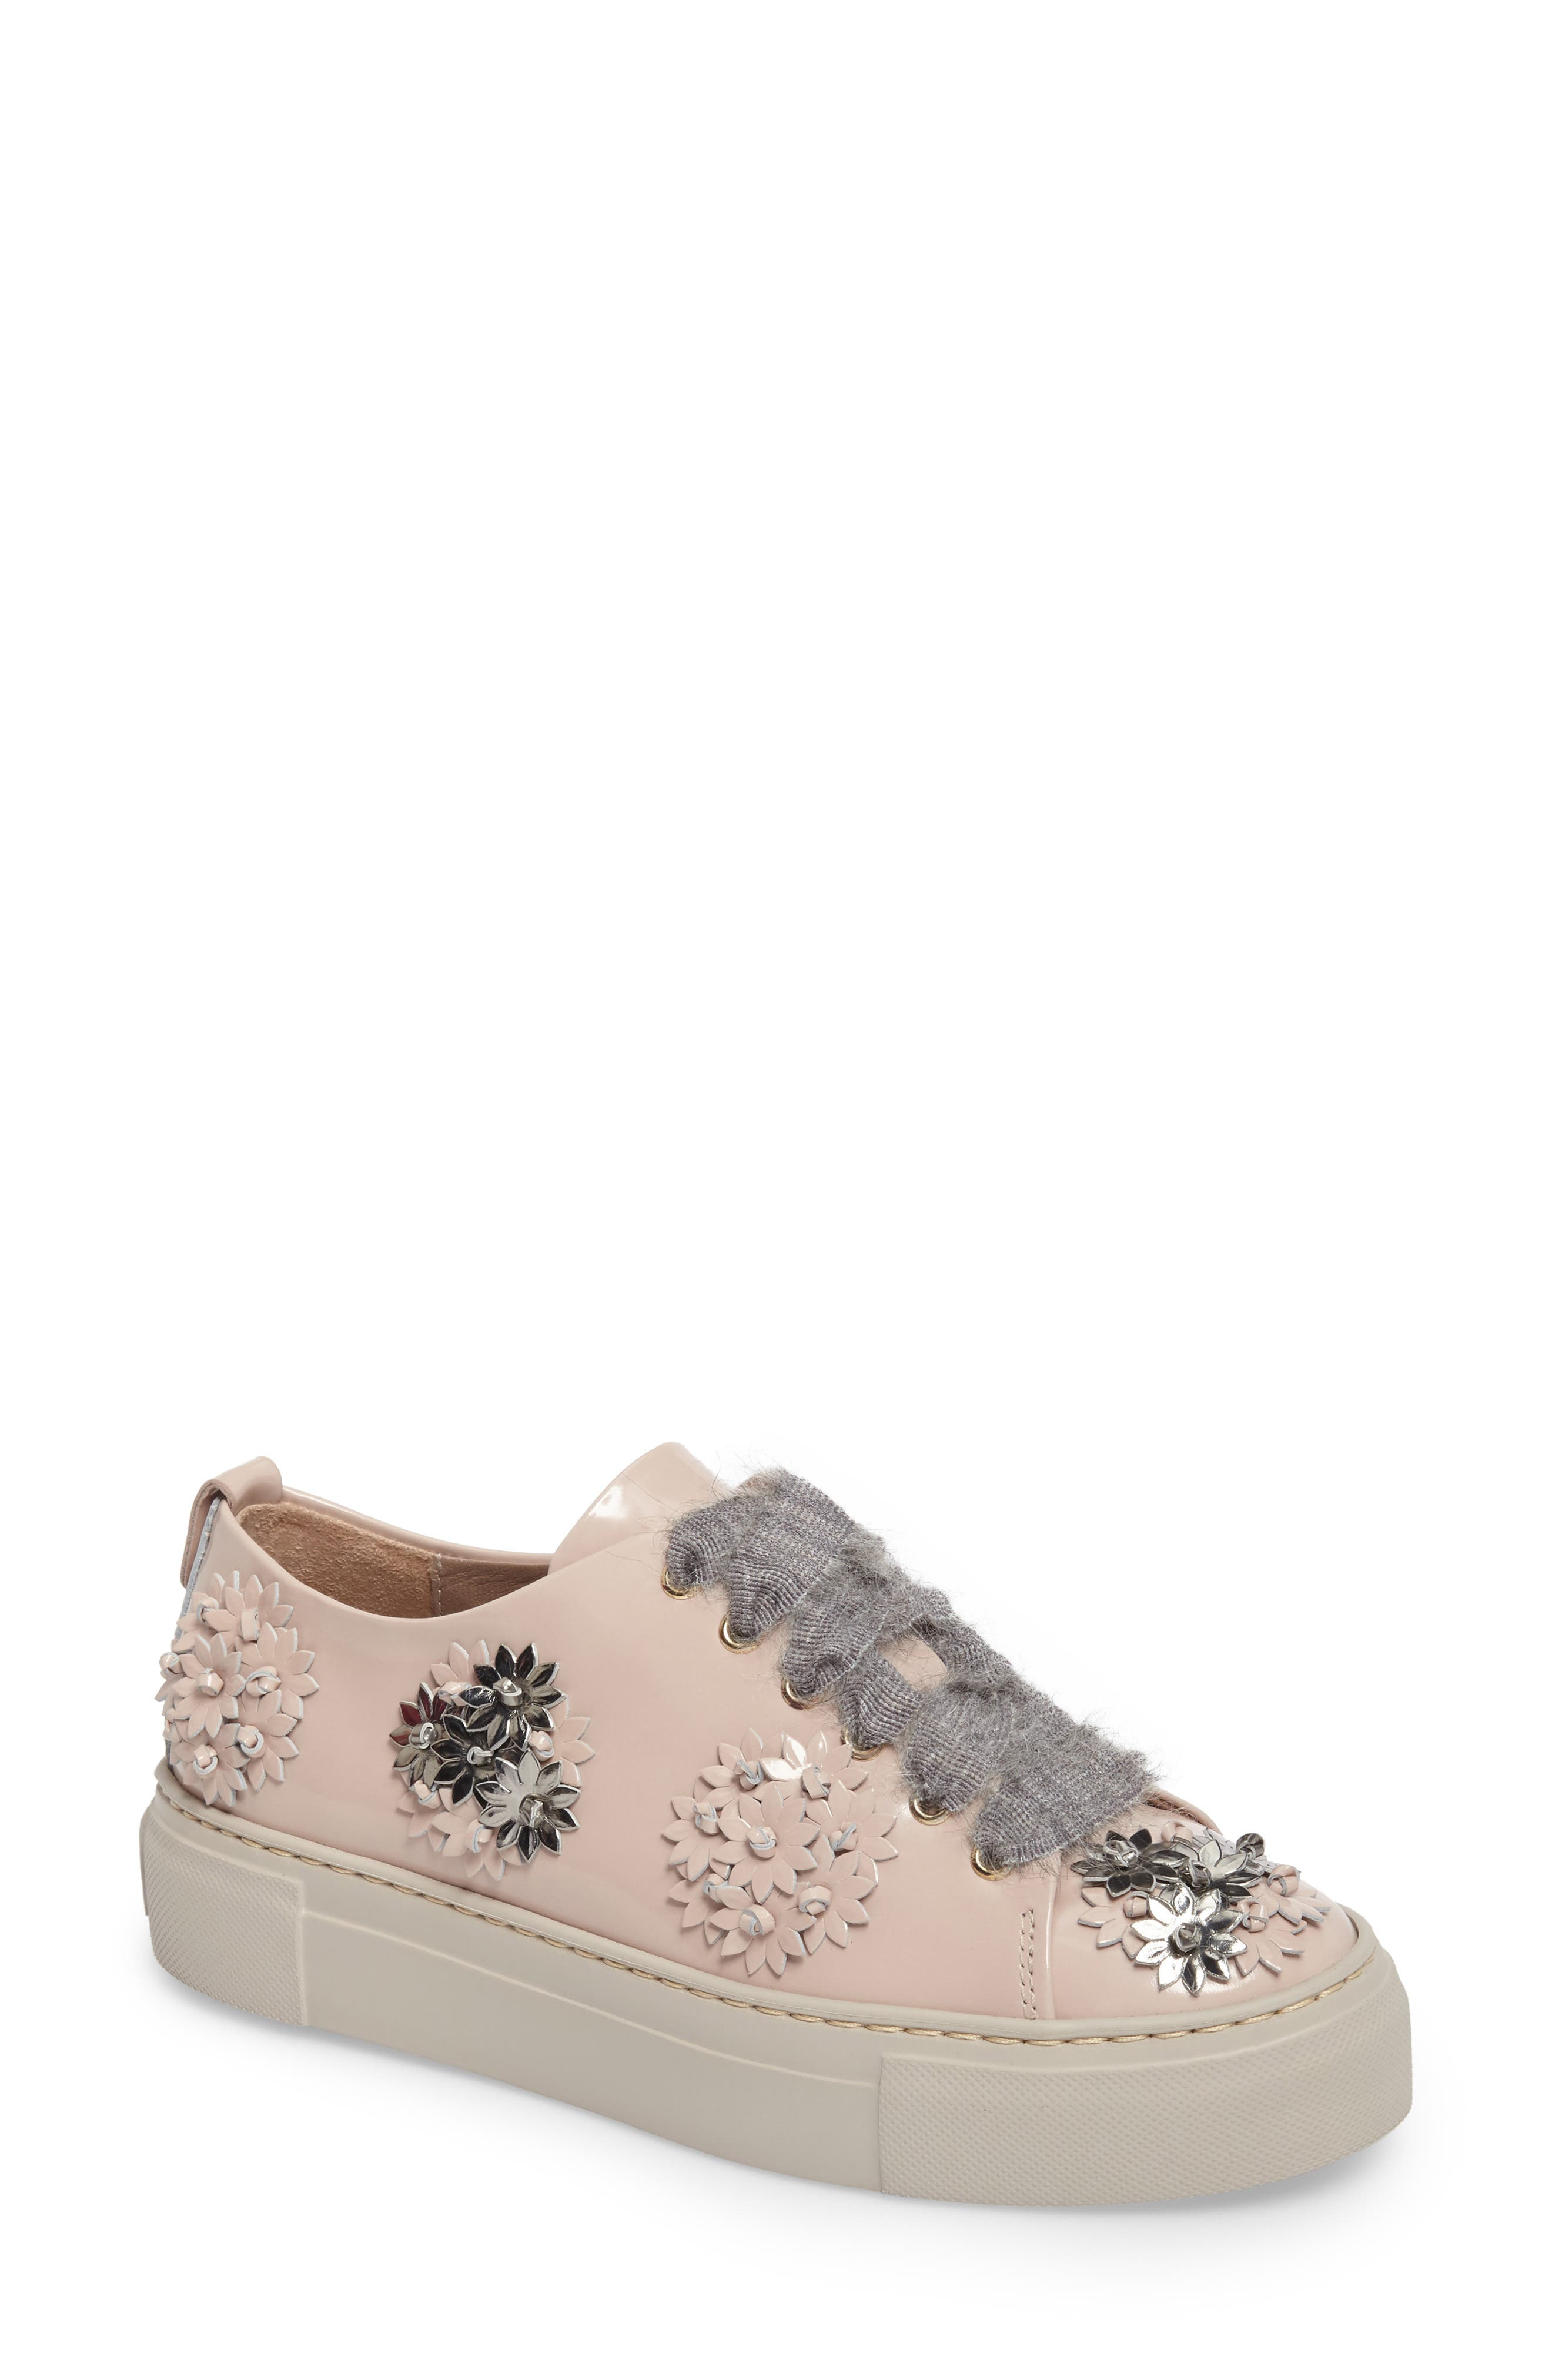 Alternate Image 1 Selected - AGL Flower Platform Sneaker (Women)